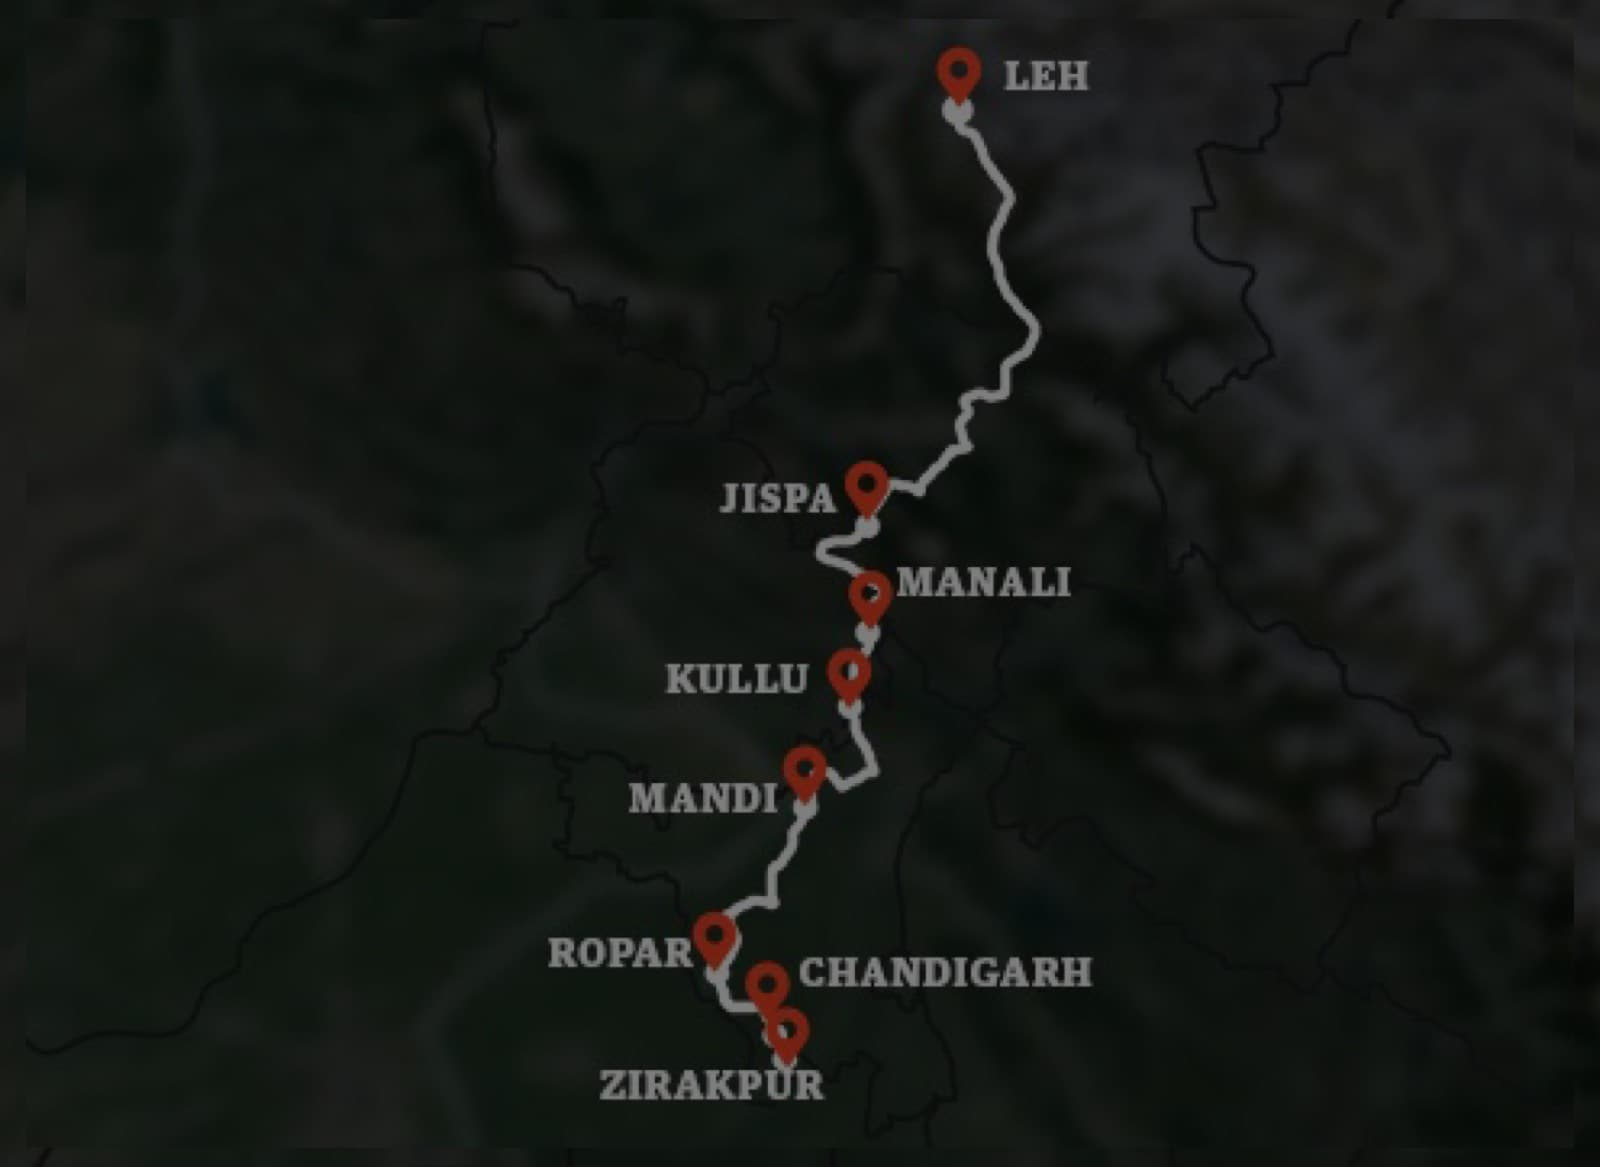 Route 3 - Zirakpur to Leh